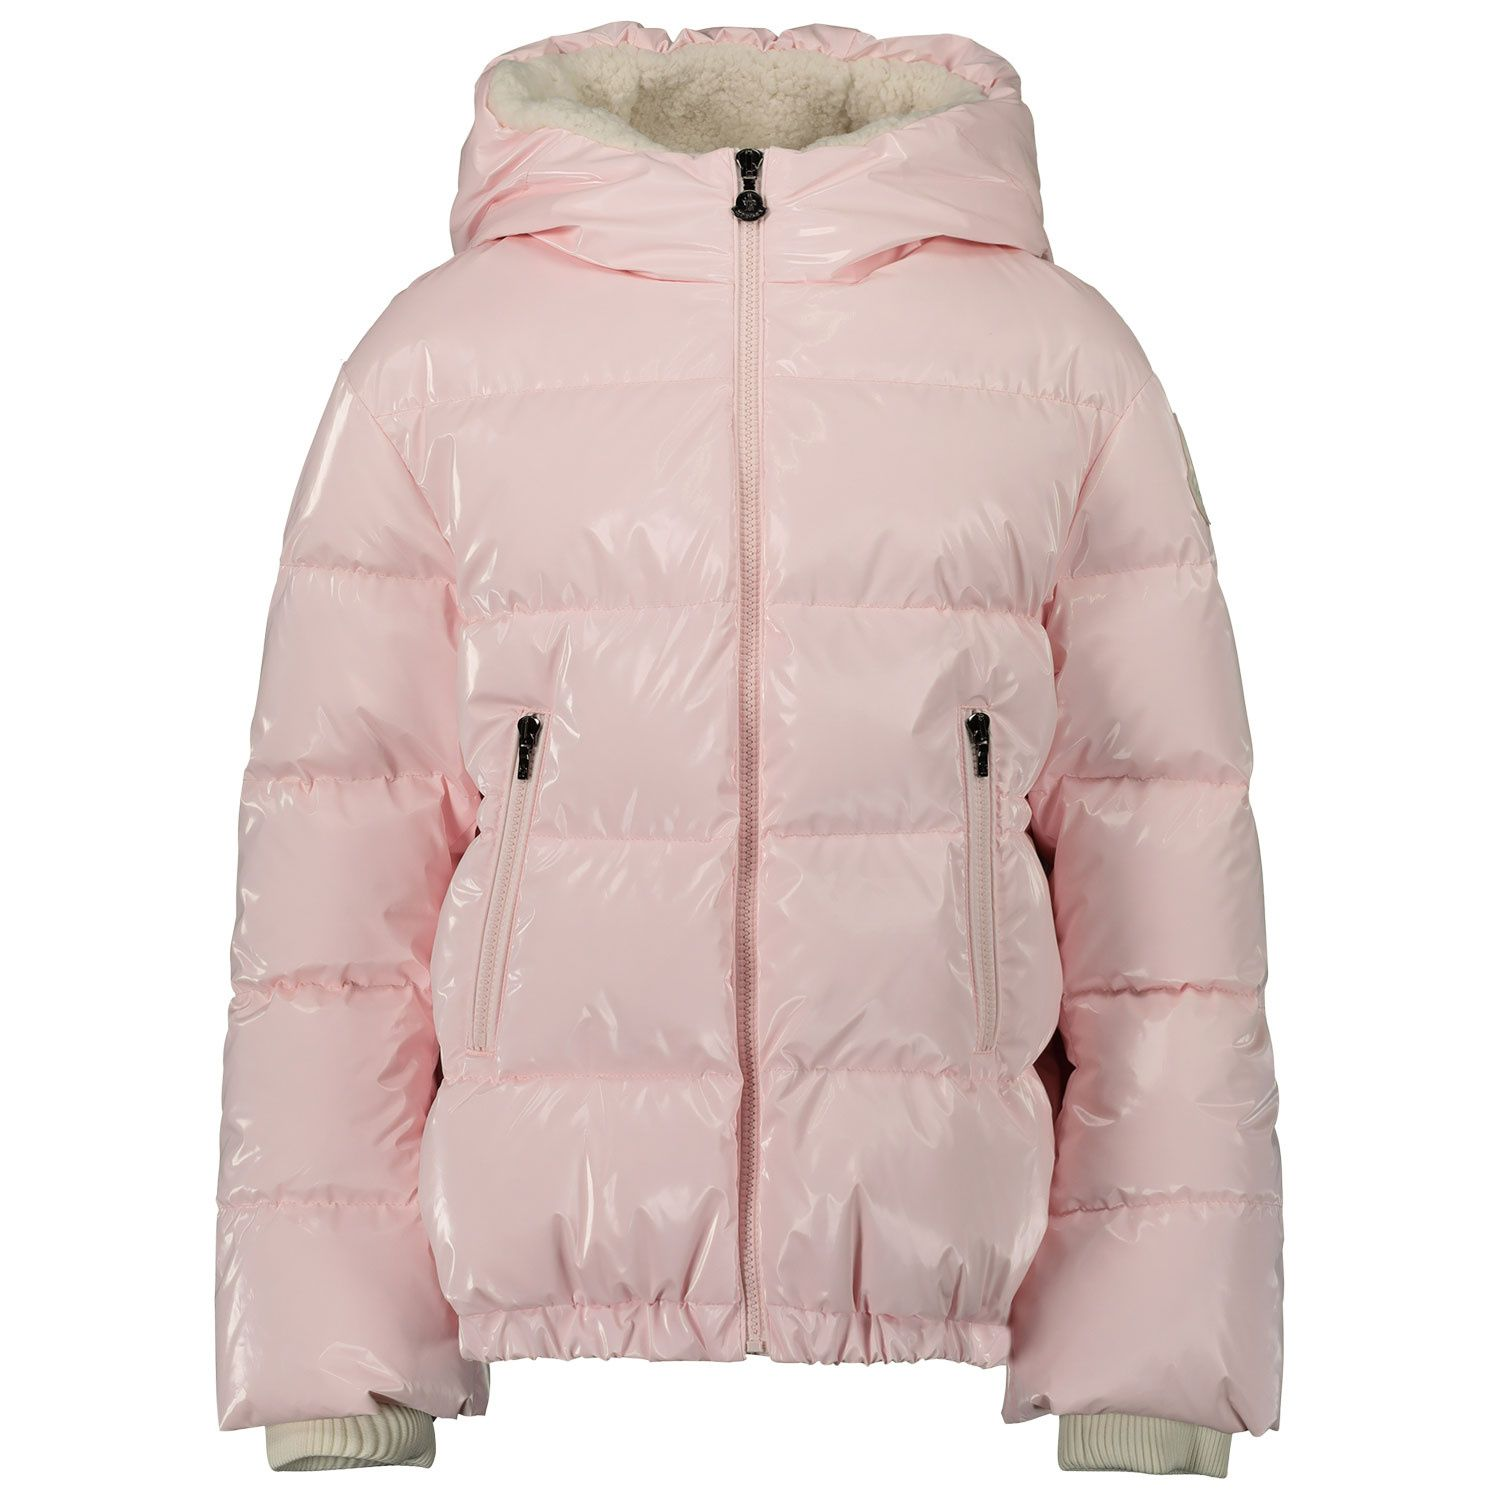 Picture of Moncler 1A55610 kids jacket light pink